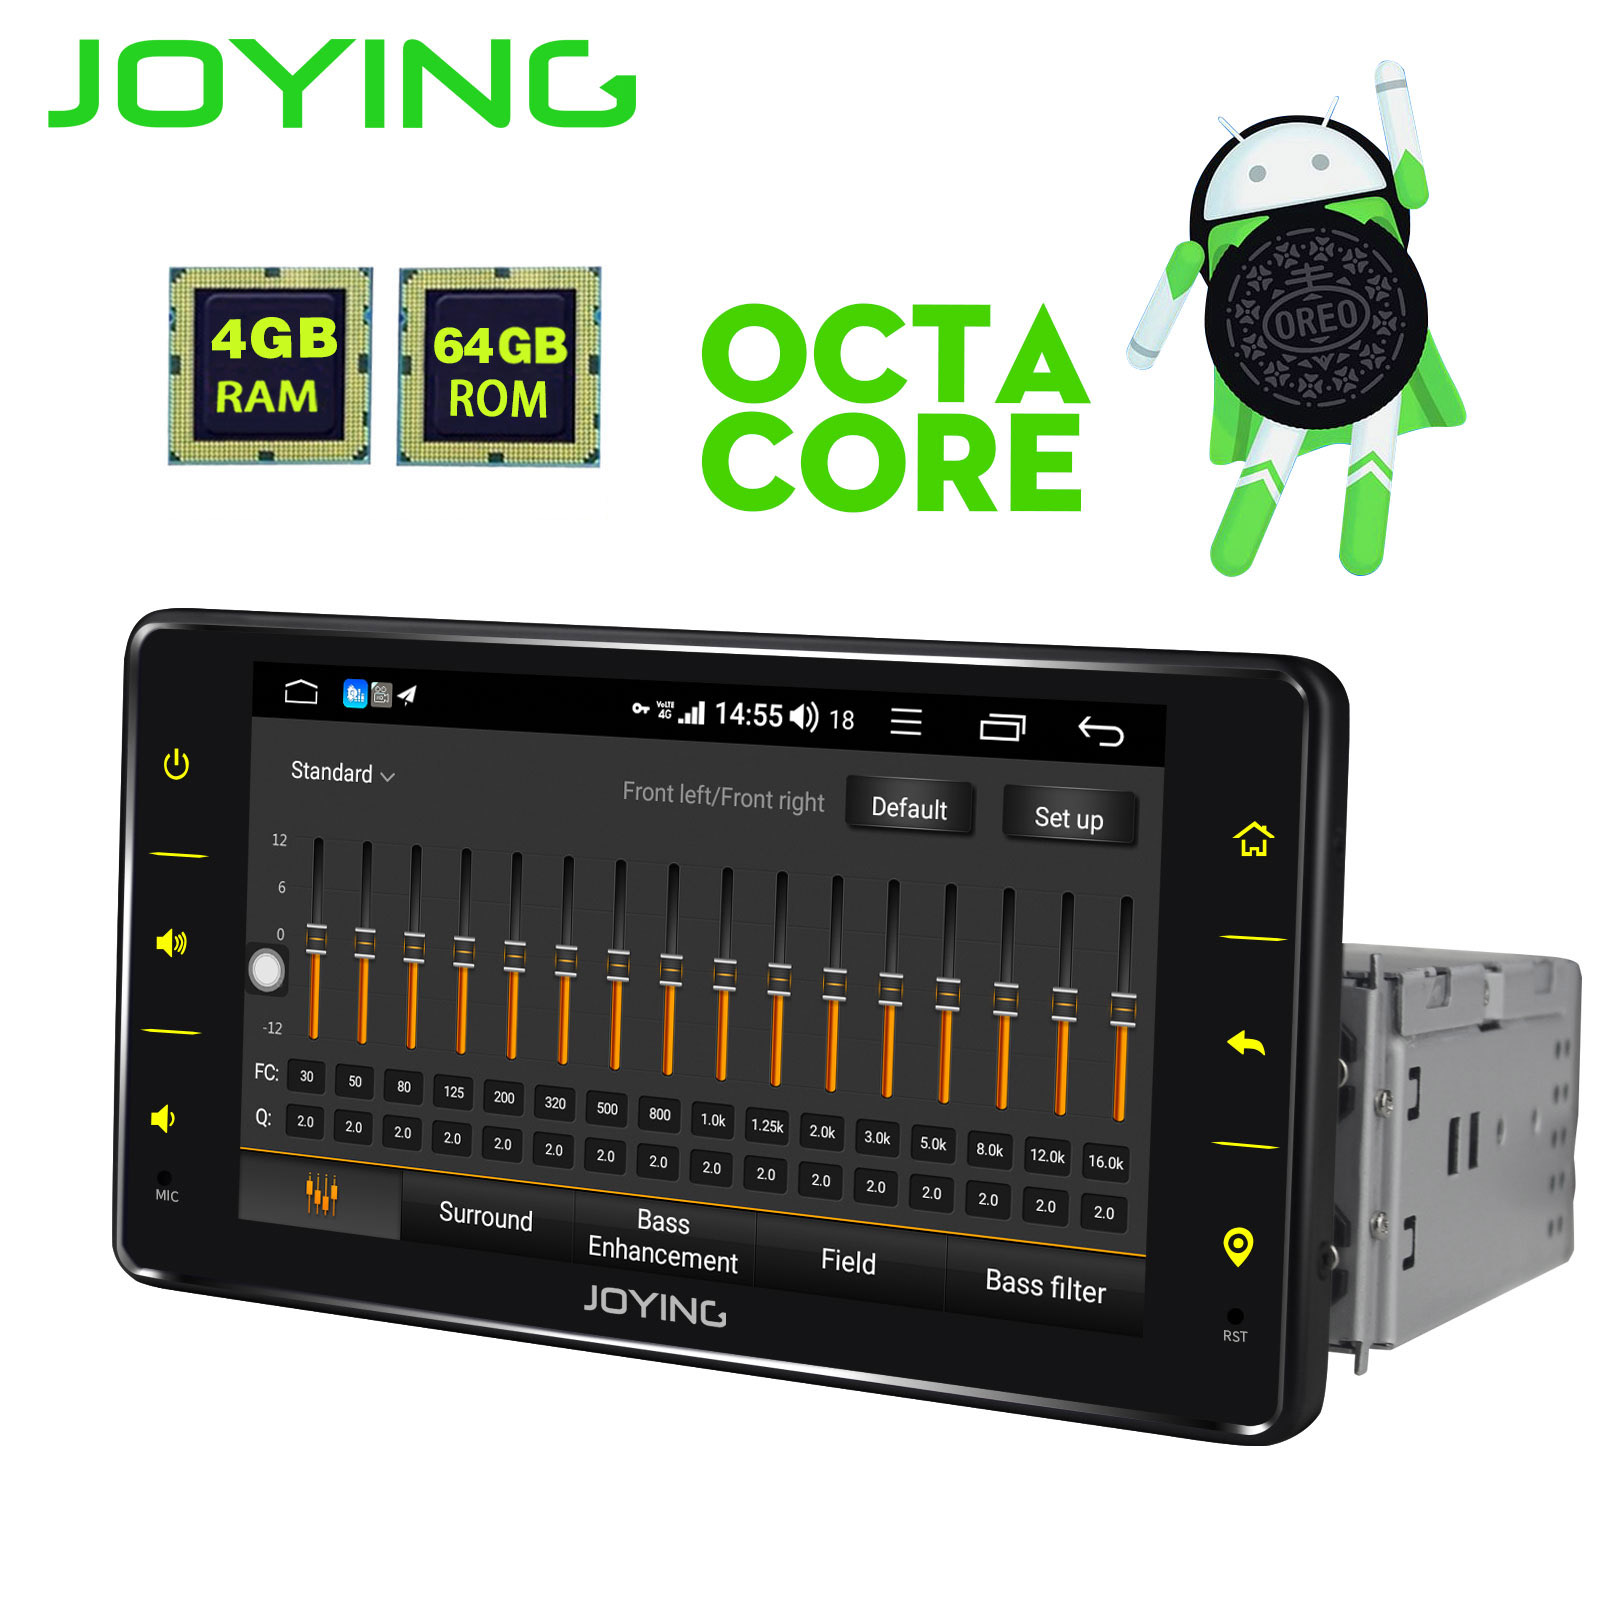 JOYING 1 din 4+64GB Android 8.1 radio cassette player 6.2 stereo GPS Navigation support 4G SWC Universal Car Radio Android auto image